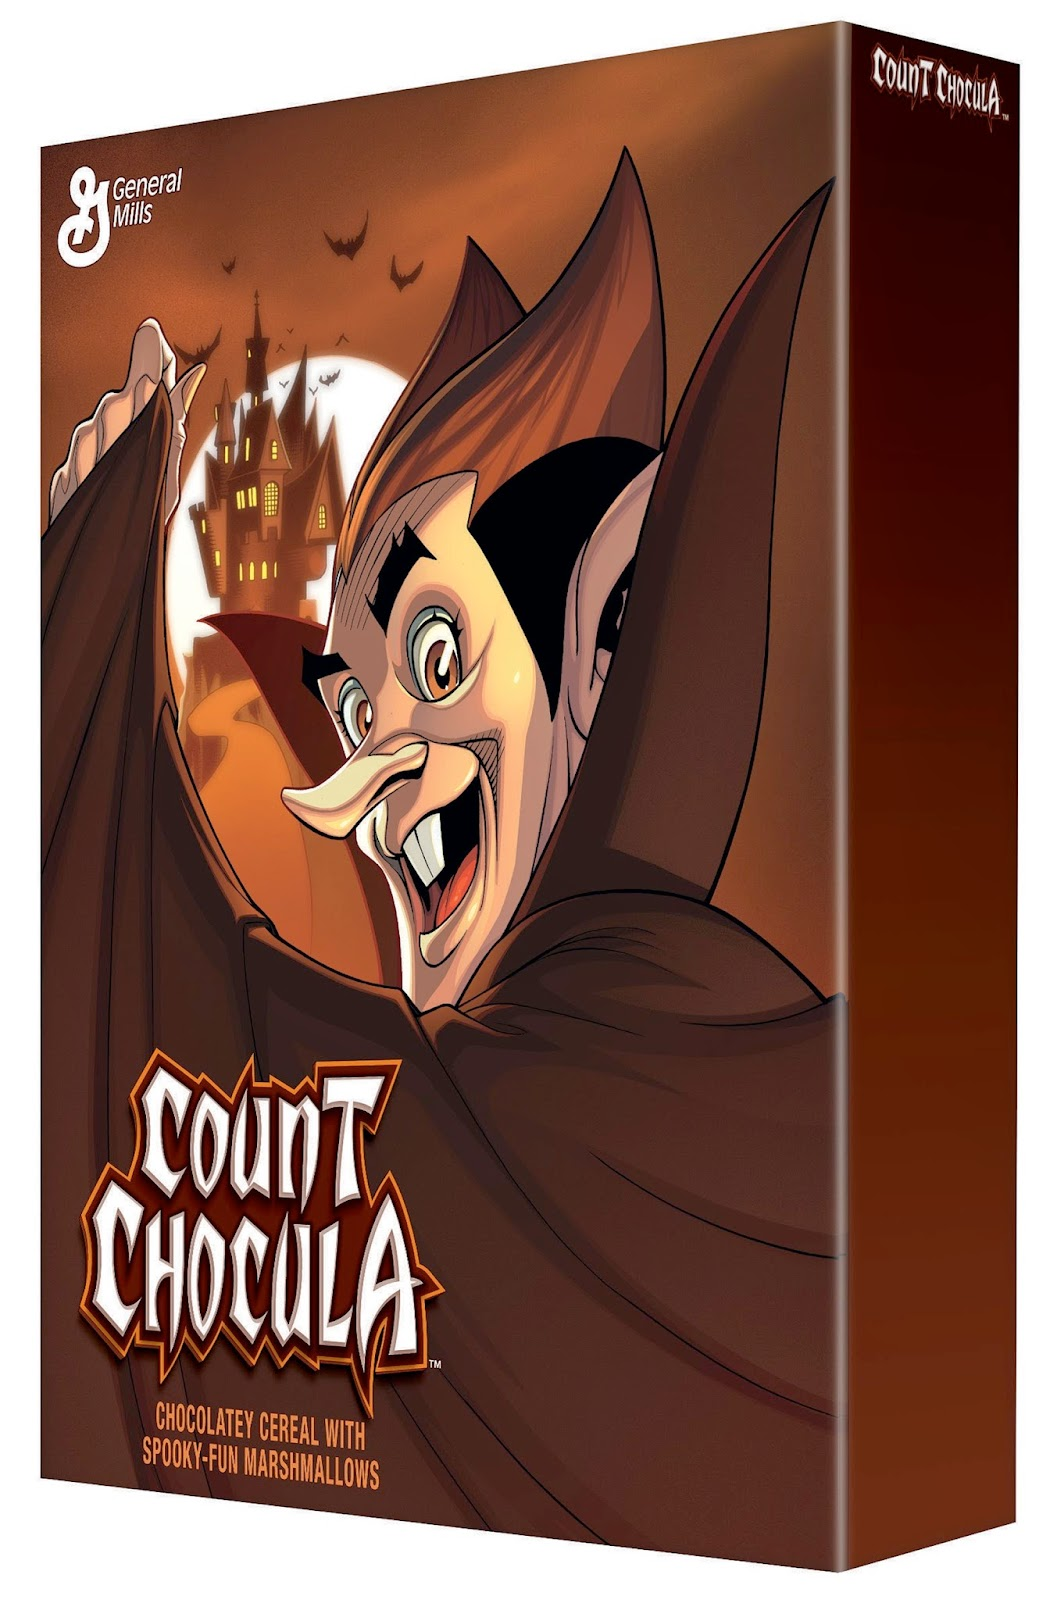 http://blog.generalmills.com/2014/08/monster-cereals-news/